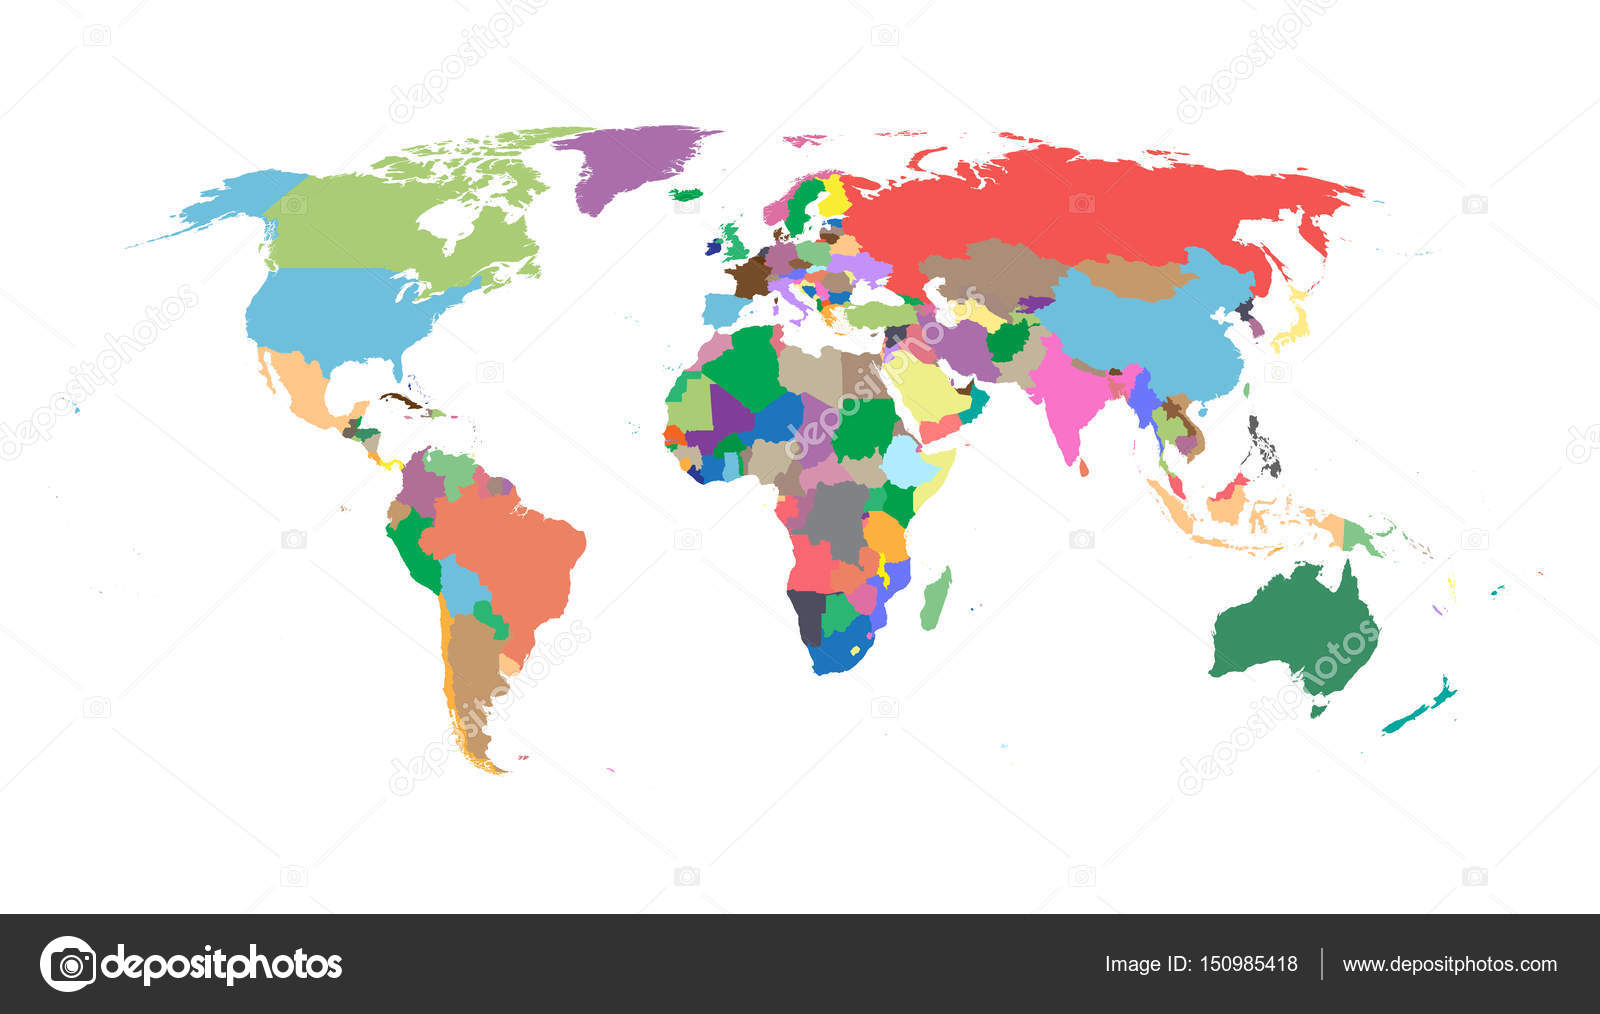 Colorful political world map isolated on white background world map colorful political world map isolated on white background world map vector template for website gumiabroncs Images